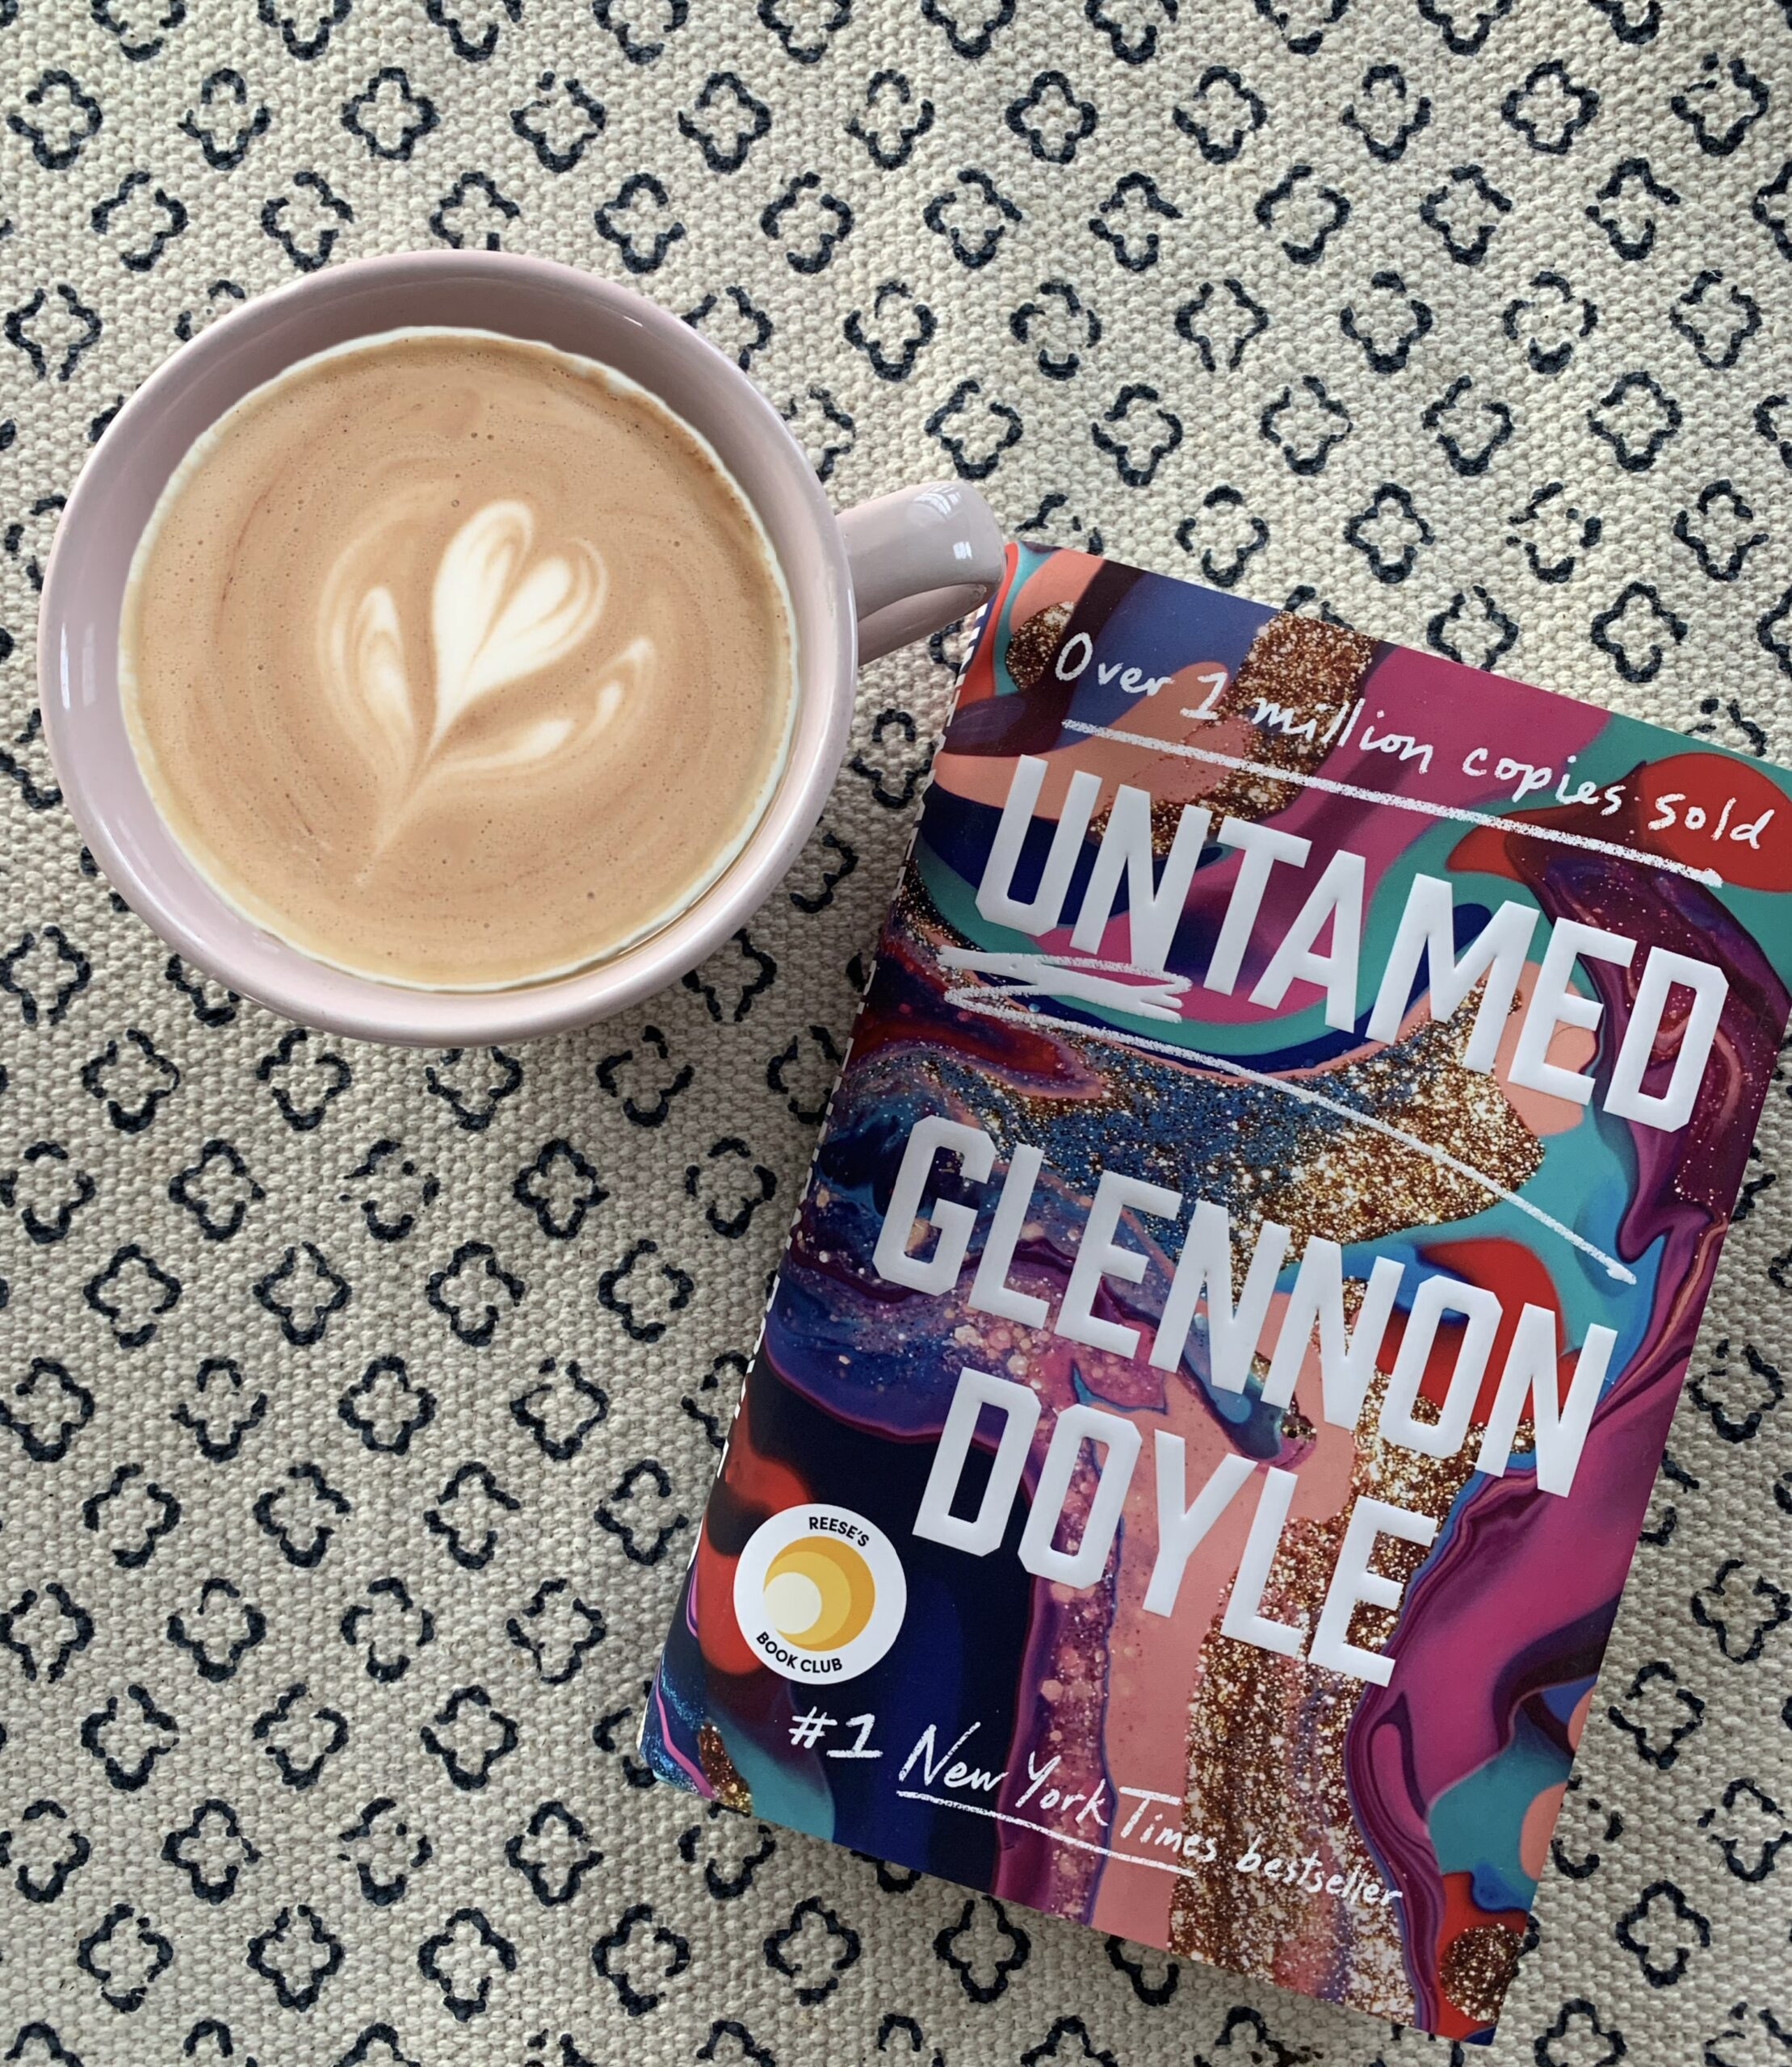 Brightly colored book cover for Untamed by Glennon Doyle Melton